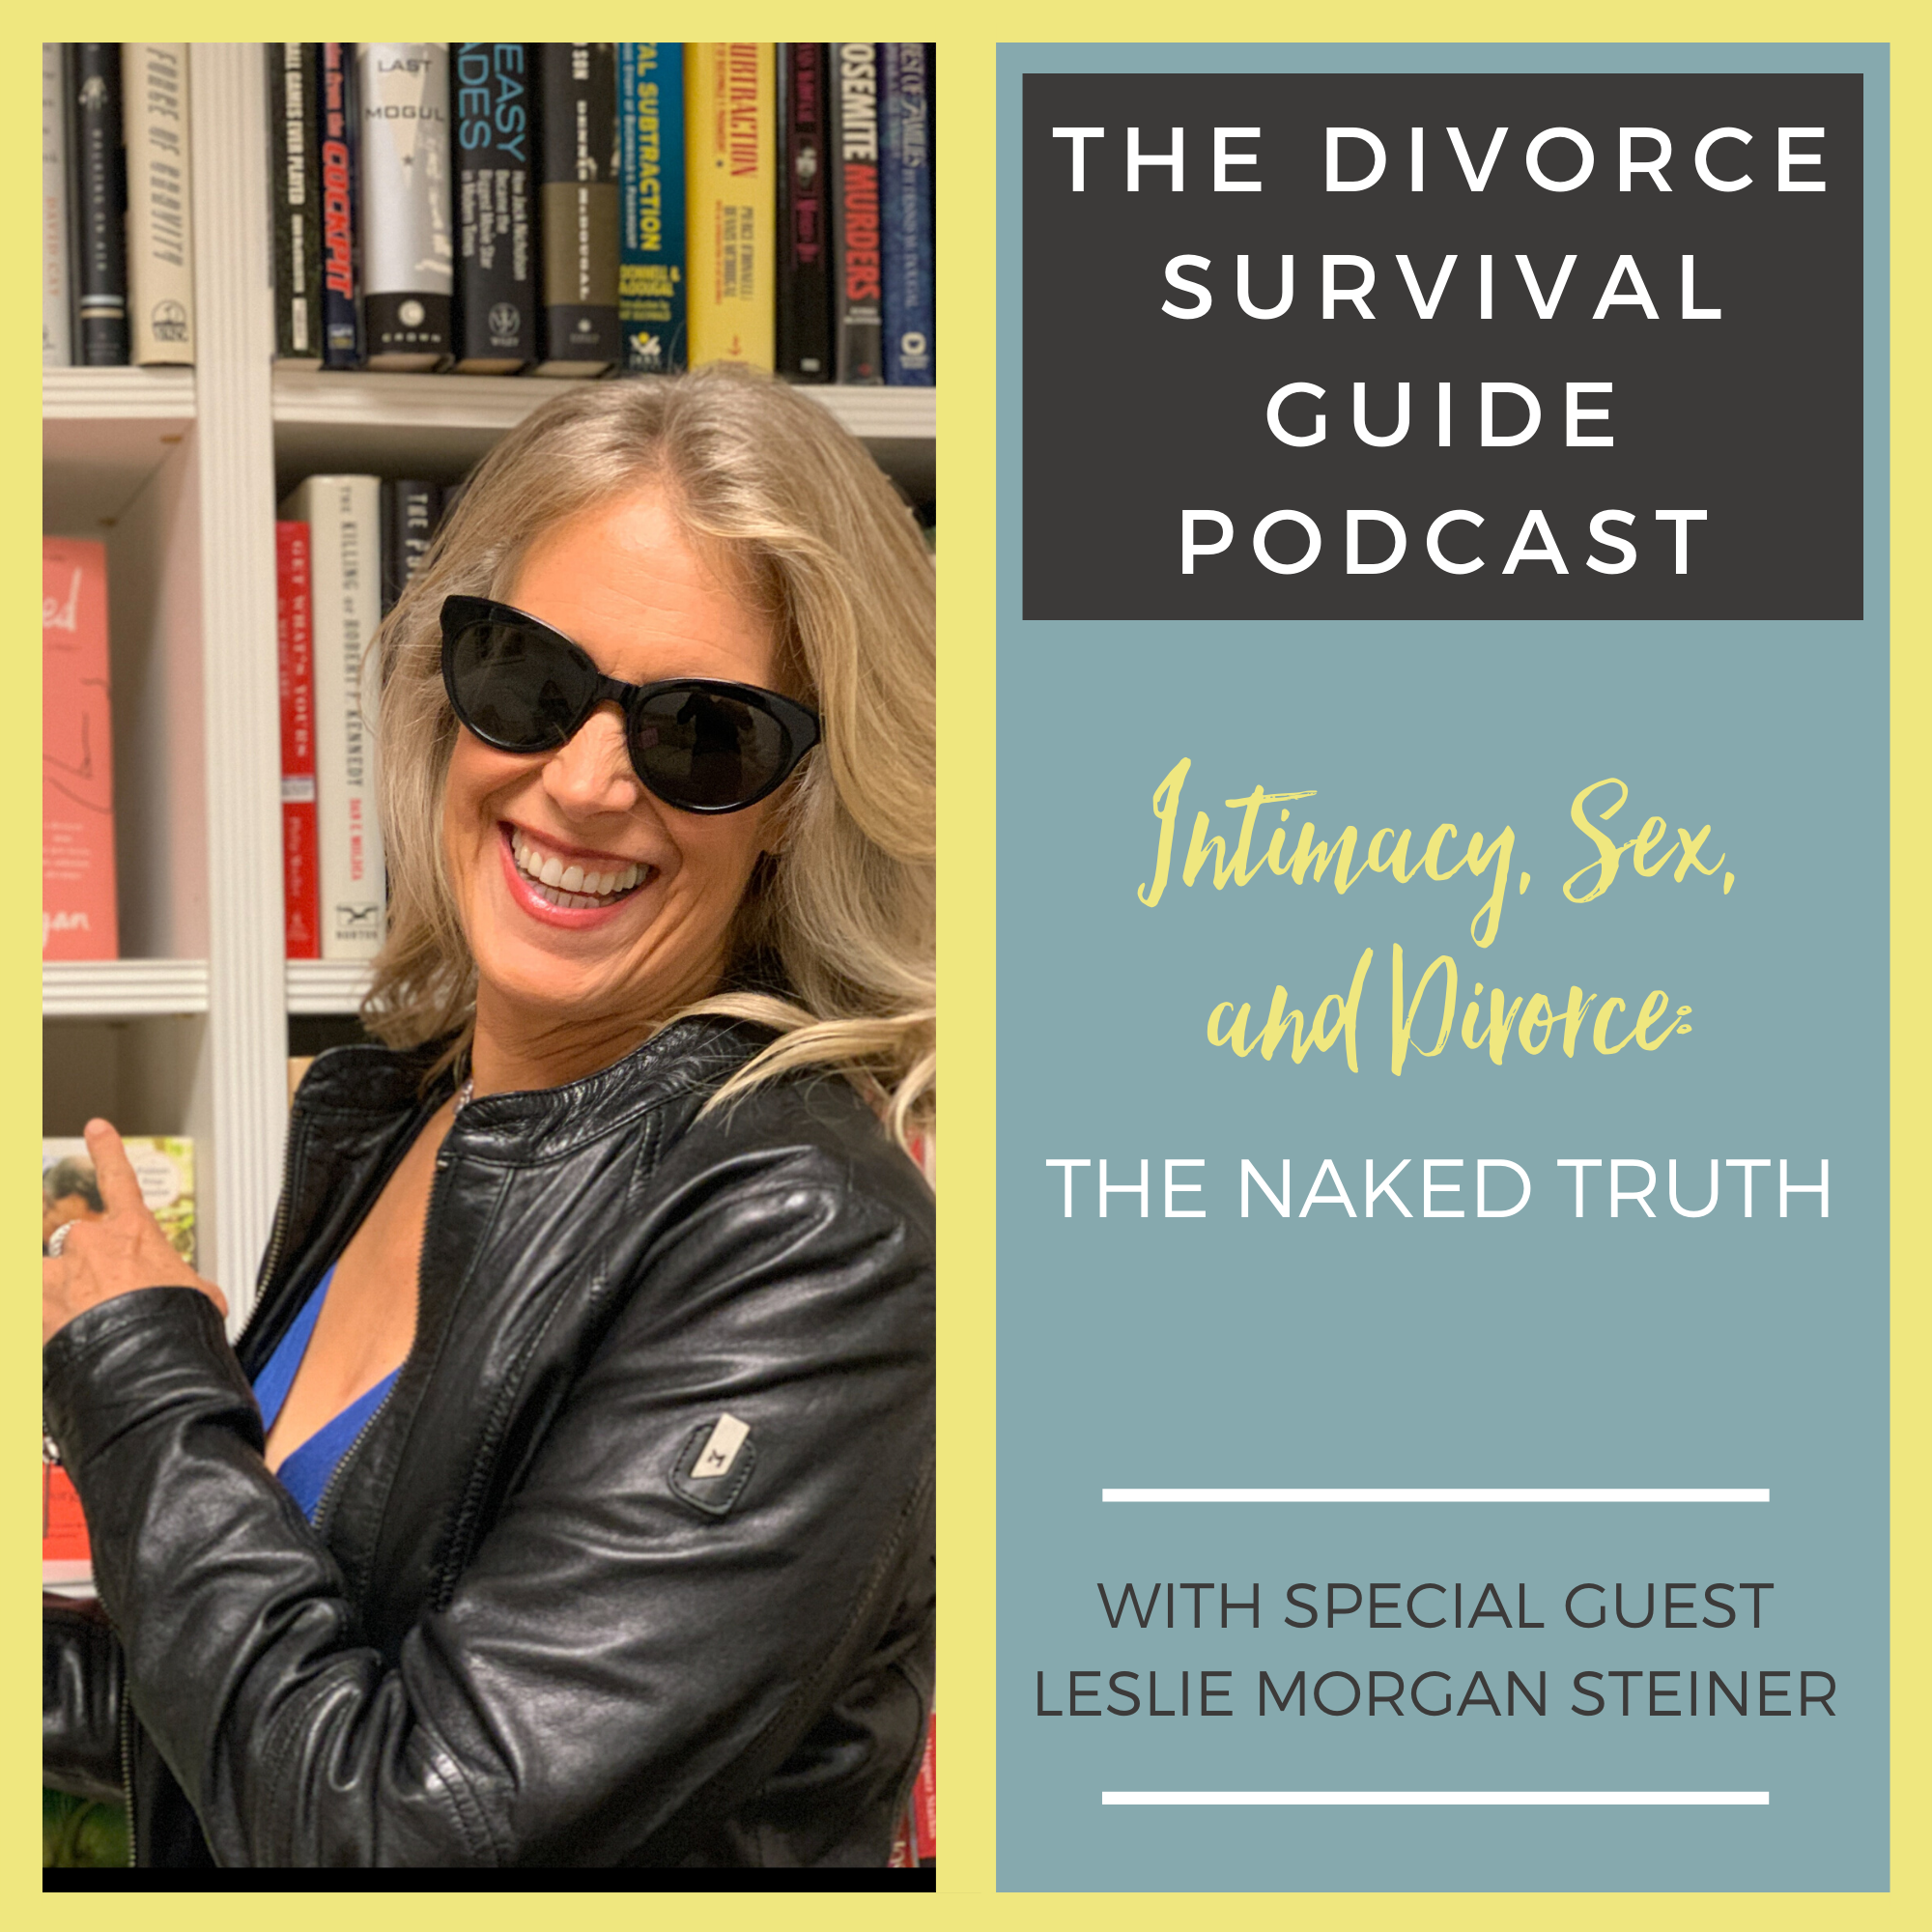 The Divorce Survival Guide Podcast - Intimacy, Sex, and Divorce: The Naked Truth with Leslie Morgan Steiner